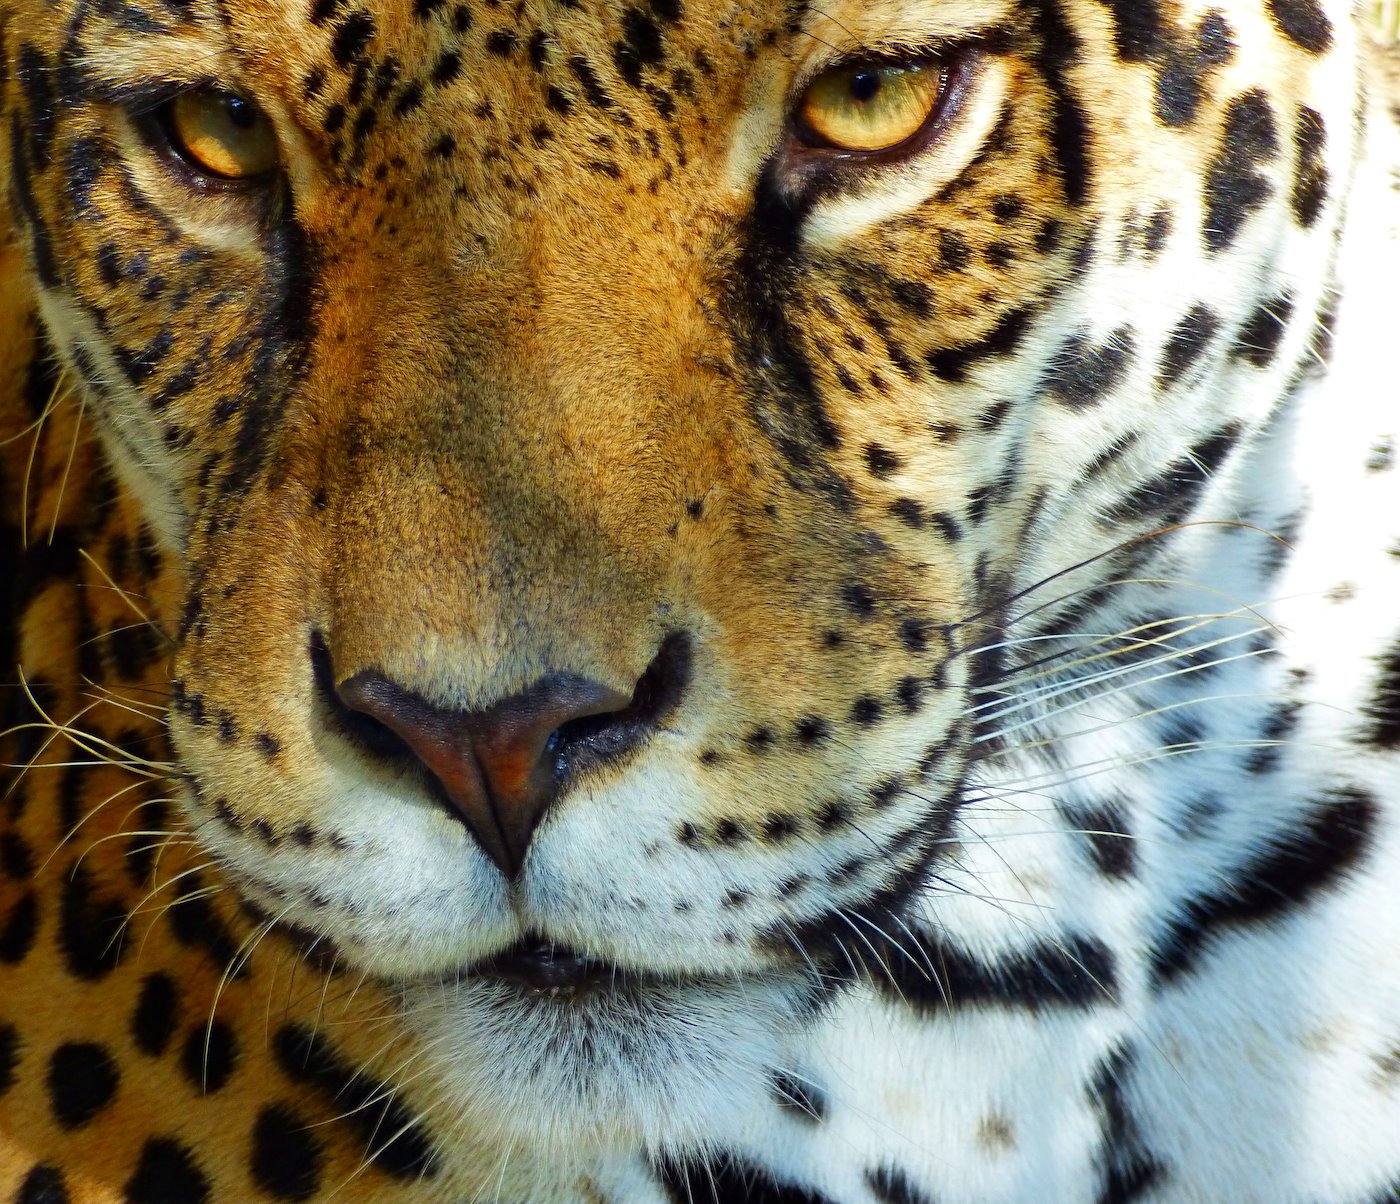 Key Biodiversity Areas and Jaguar Conservation Units and Corridors